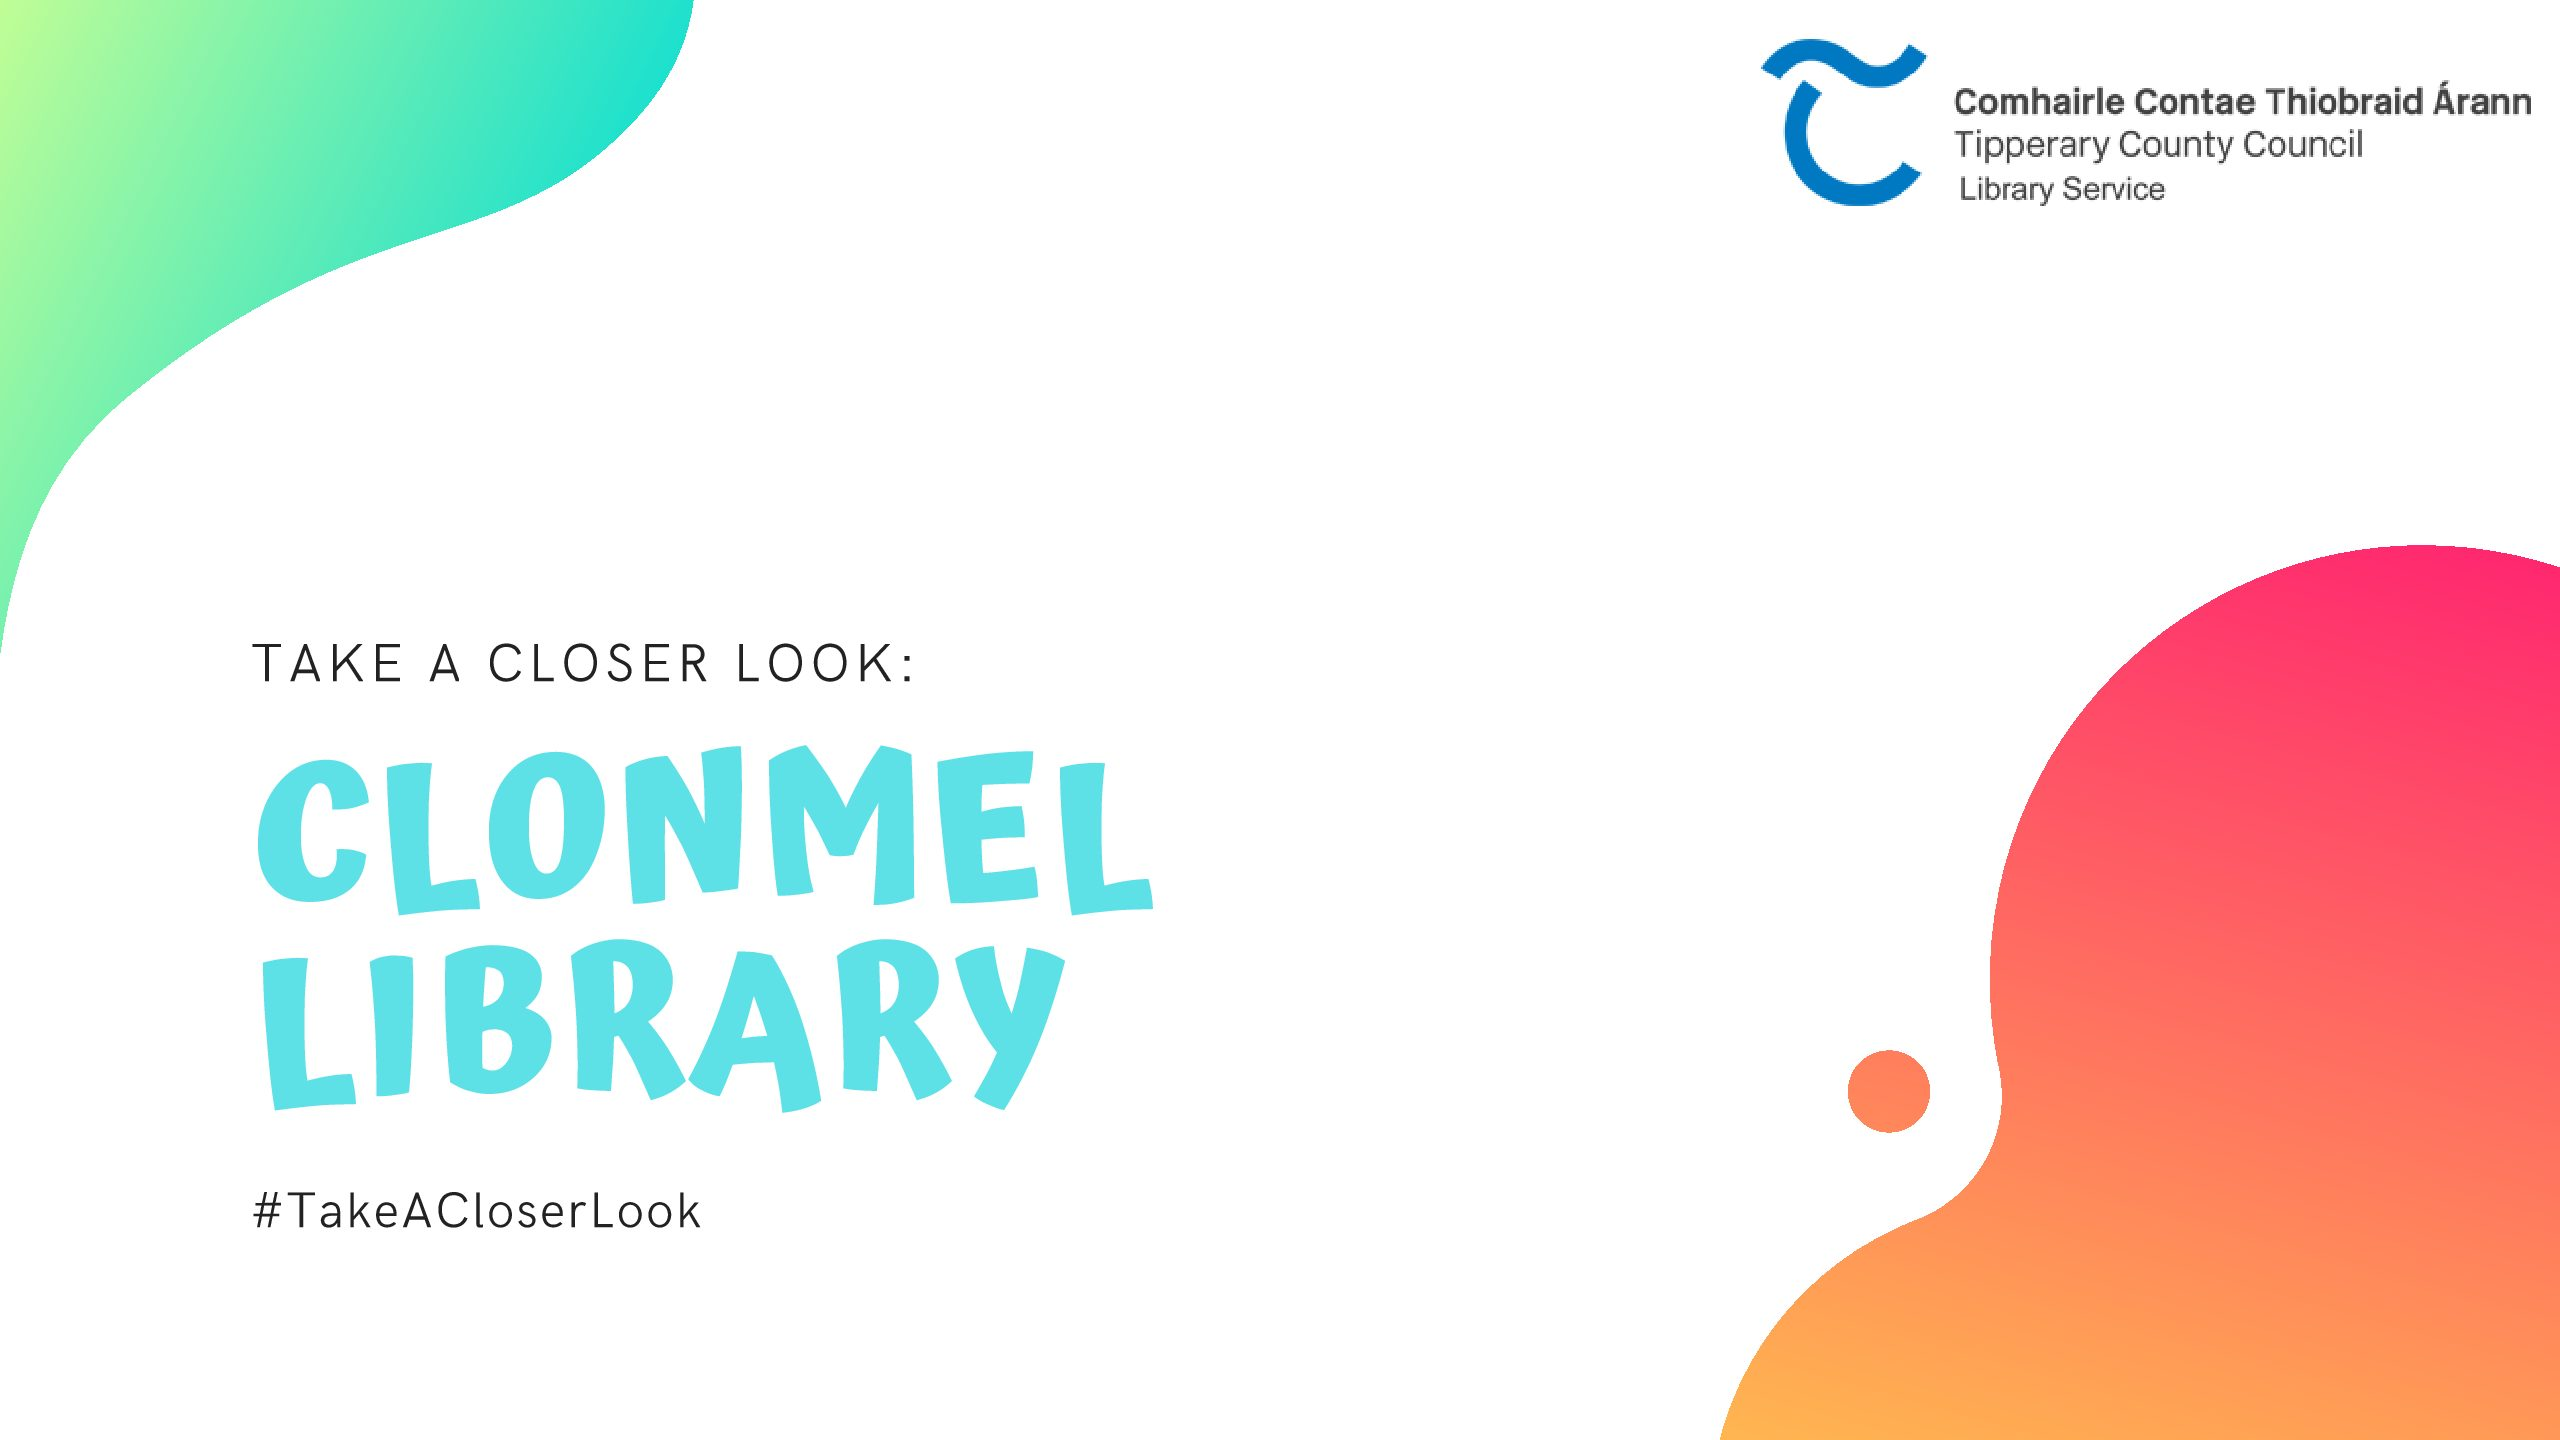 Take A Closer Look At Clonmel Library